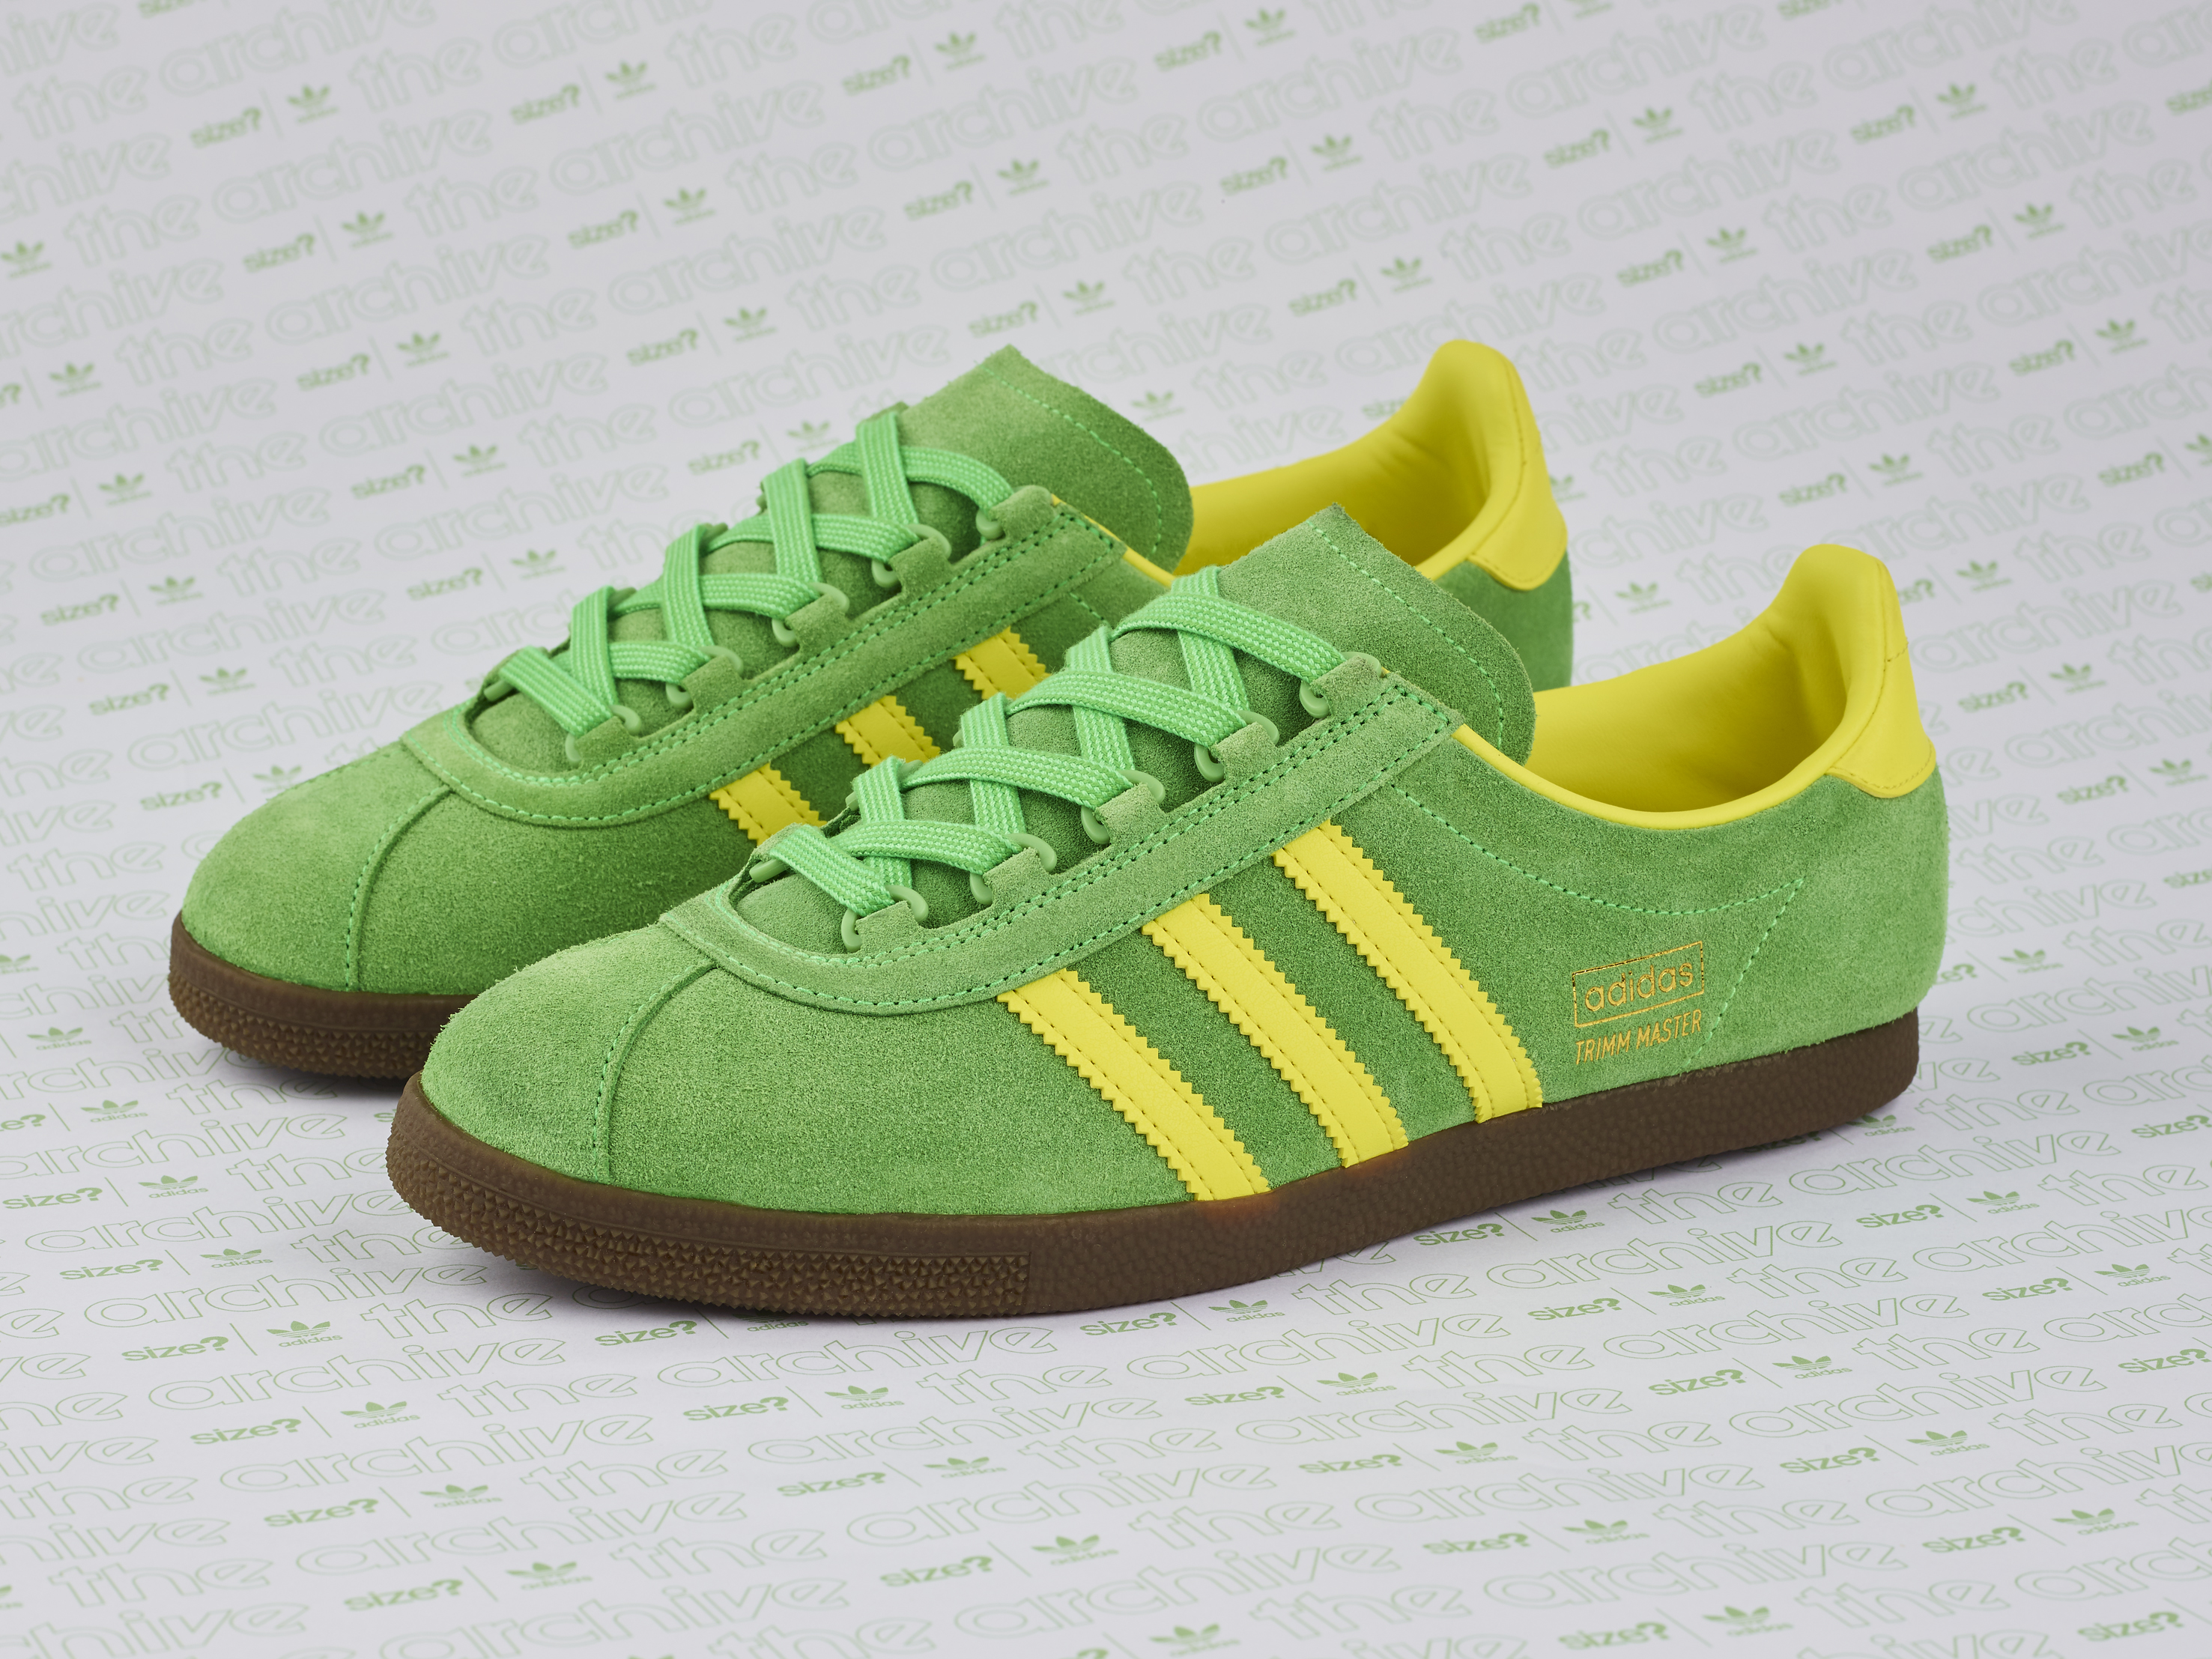 adidas Originals Archive Trimm Master OG Lime Yellow – size  Exclusive 9bc0408fbe